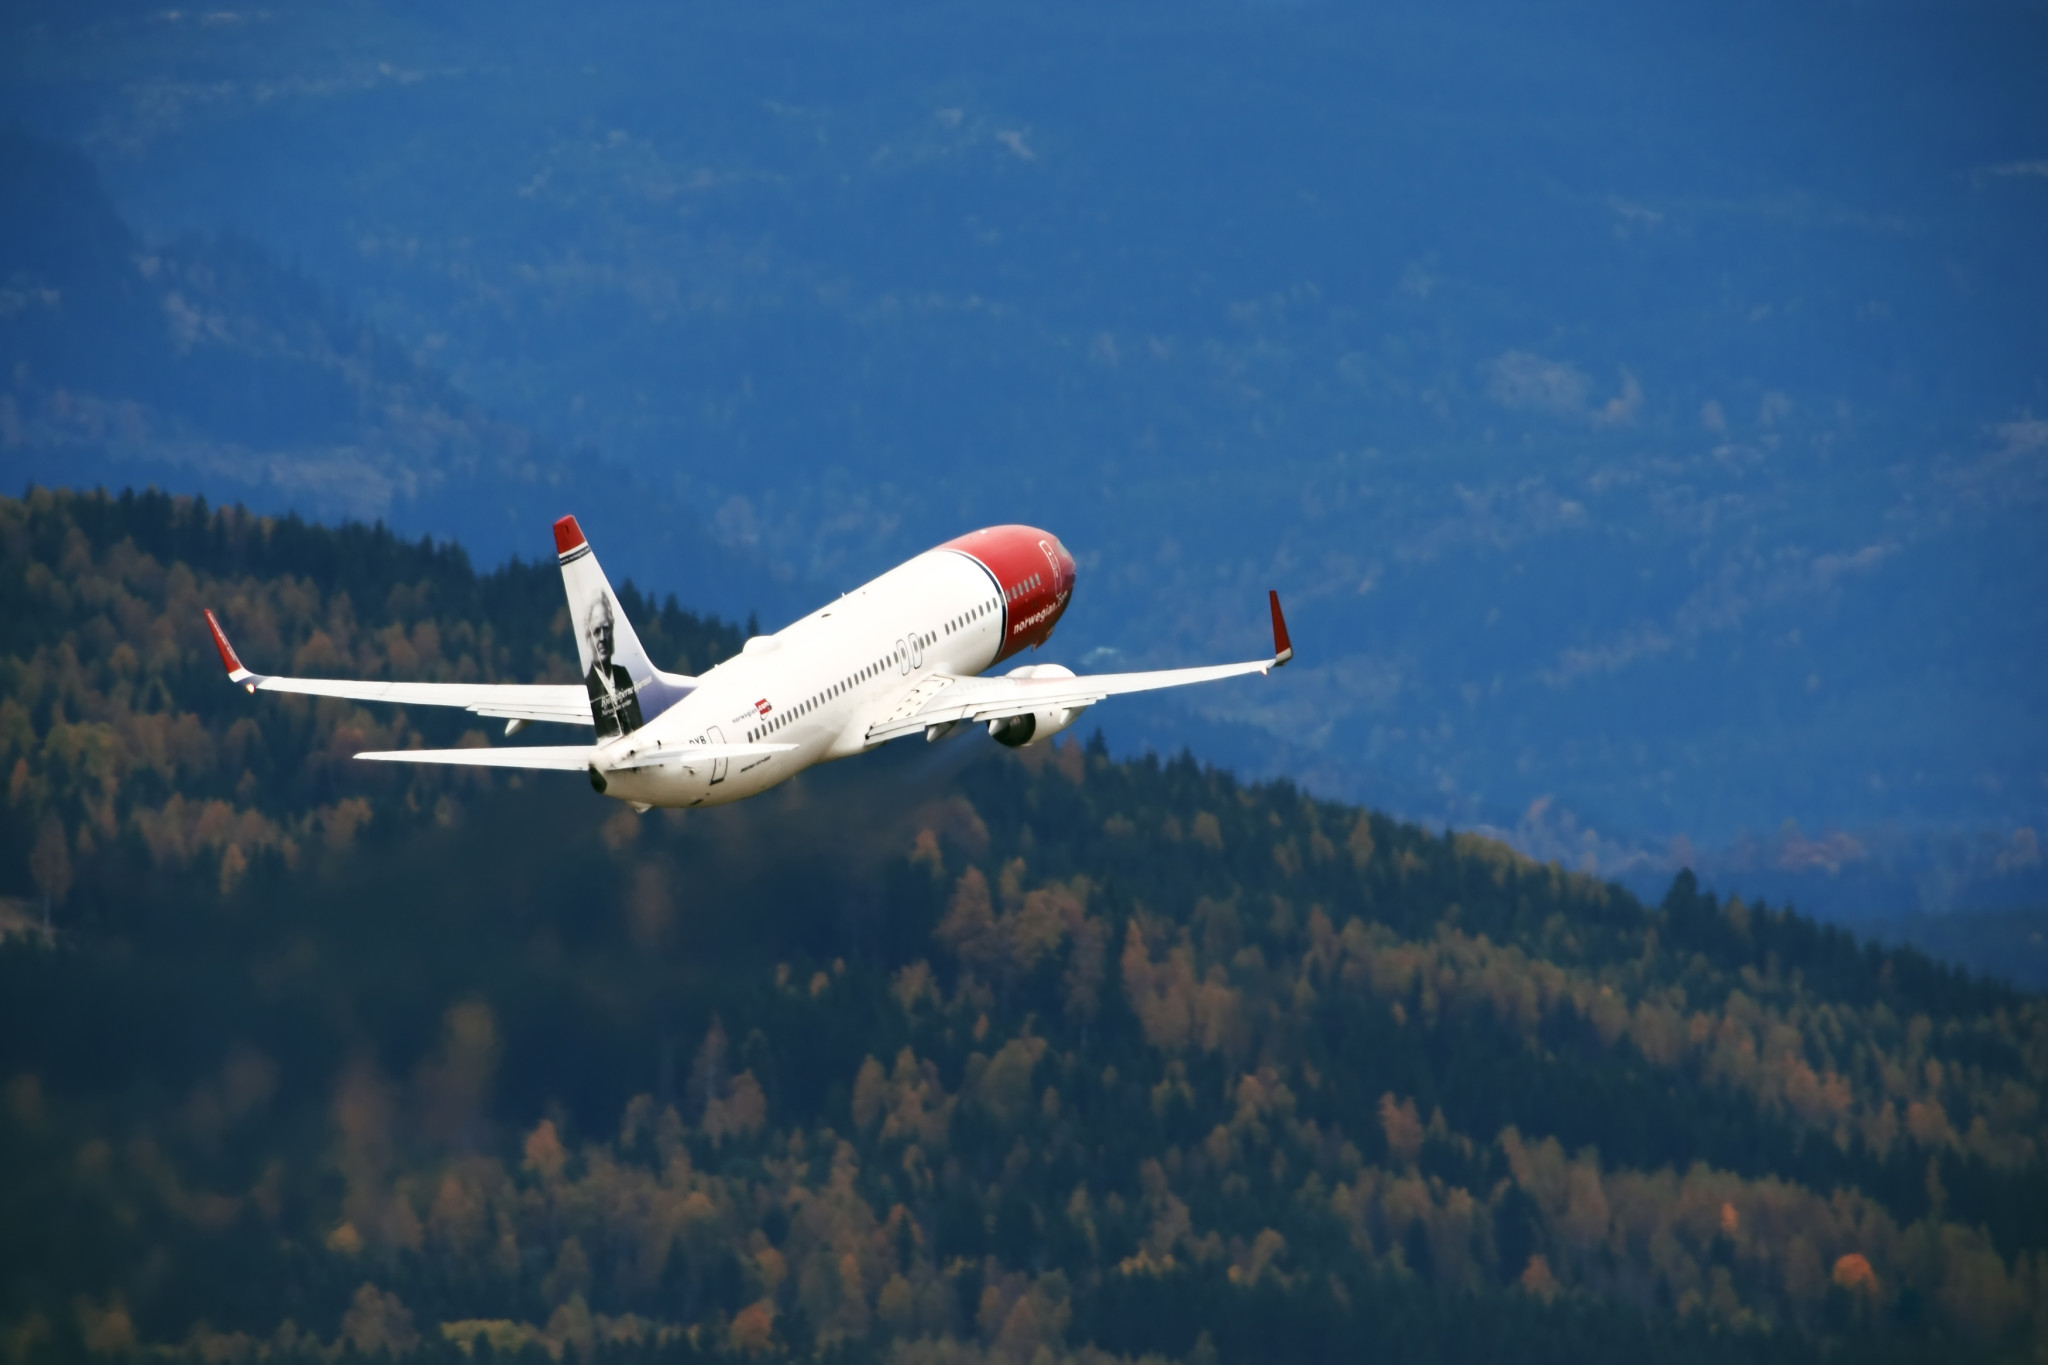 Norwegian announces 12 per cent increase in passenger number in August vs. same month the previous year